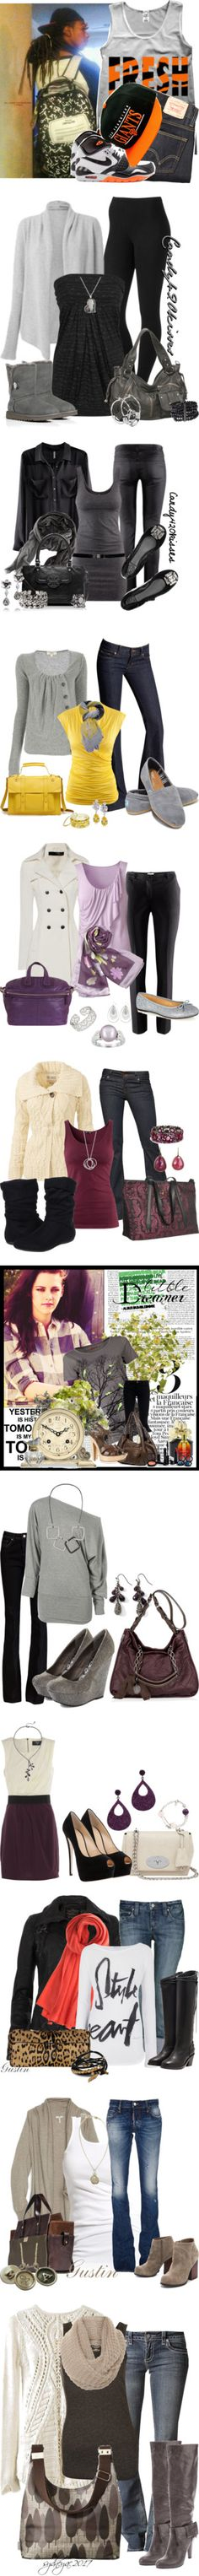 """""""Outfits"""" by loca-eqauy217 ❤ liked on Polyvore"""